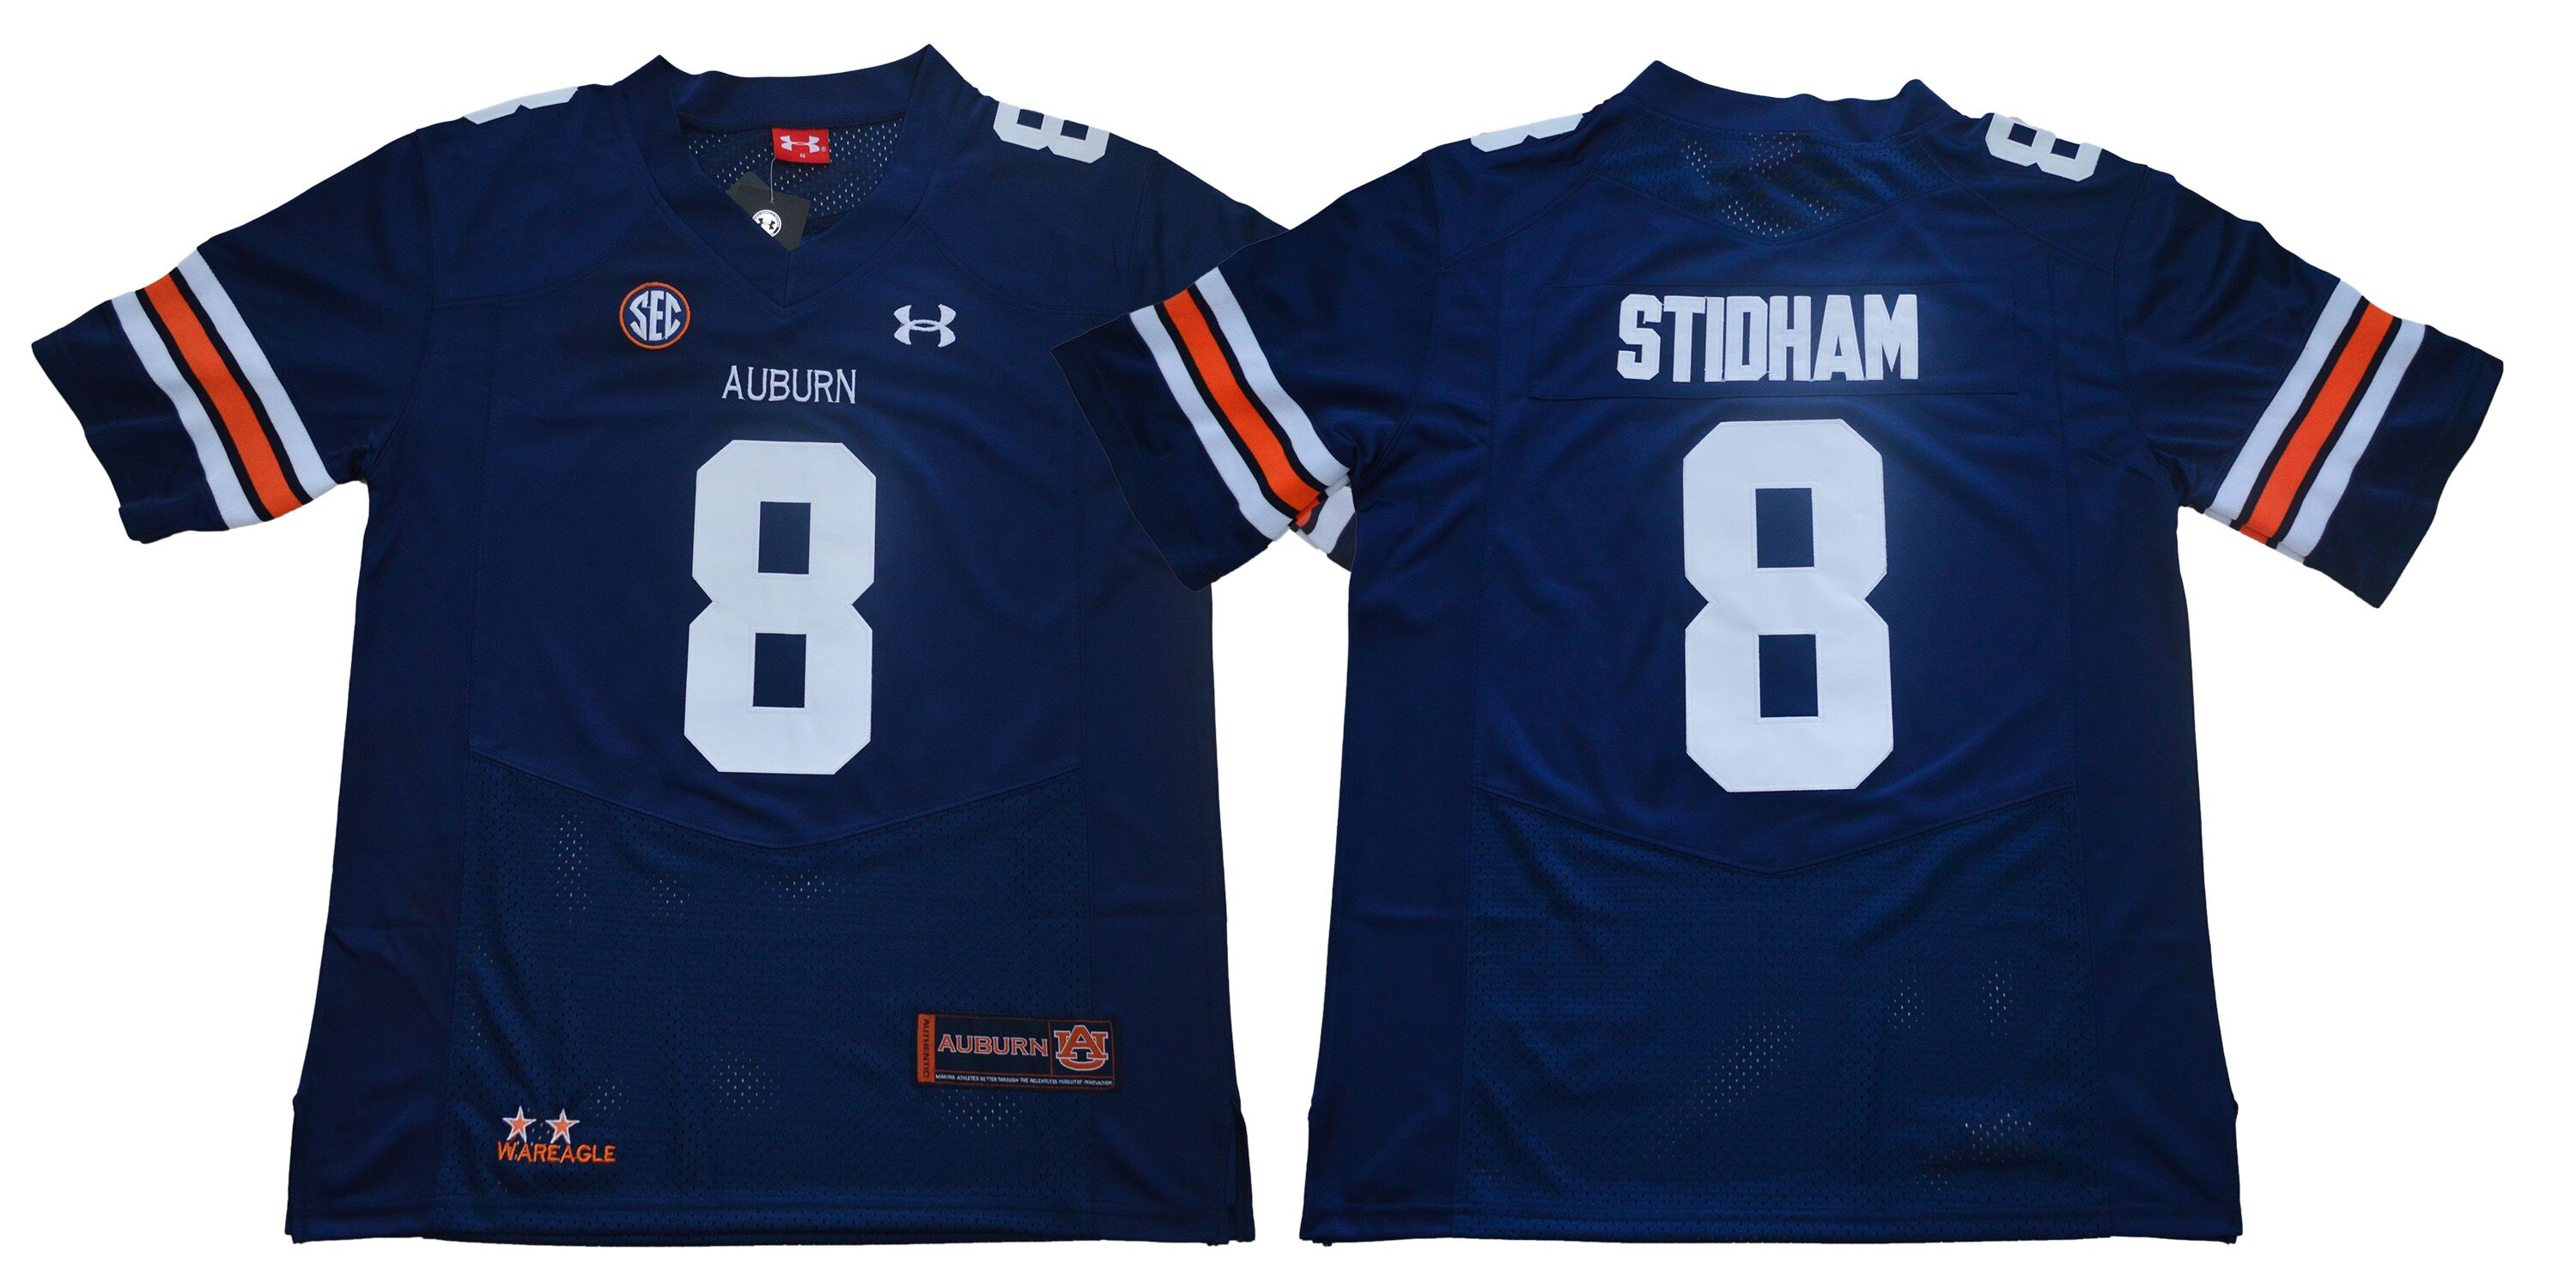 Auburn Tigers 8 Jarrett Stidham Navy College Football Jersey